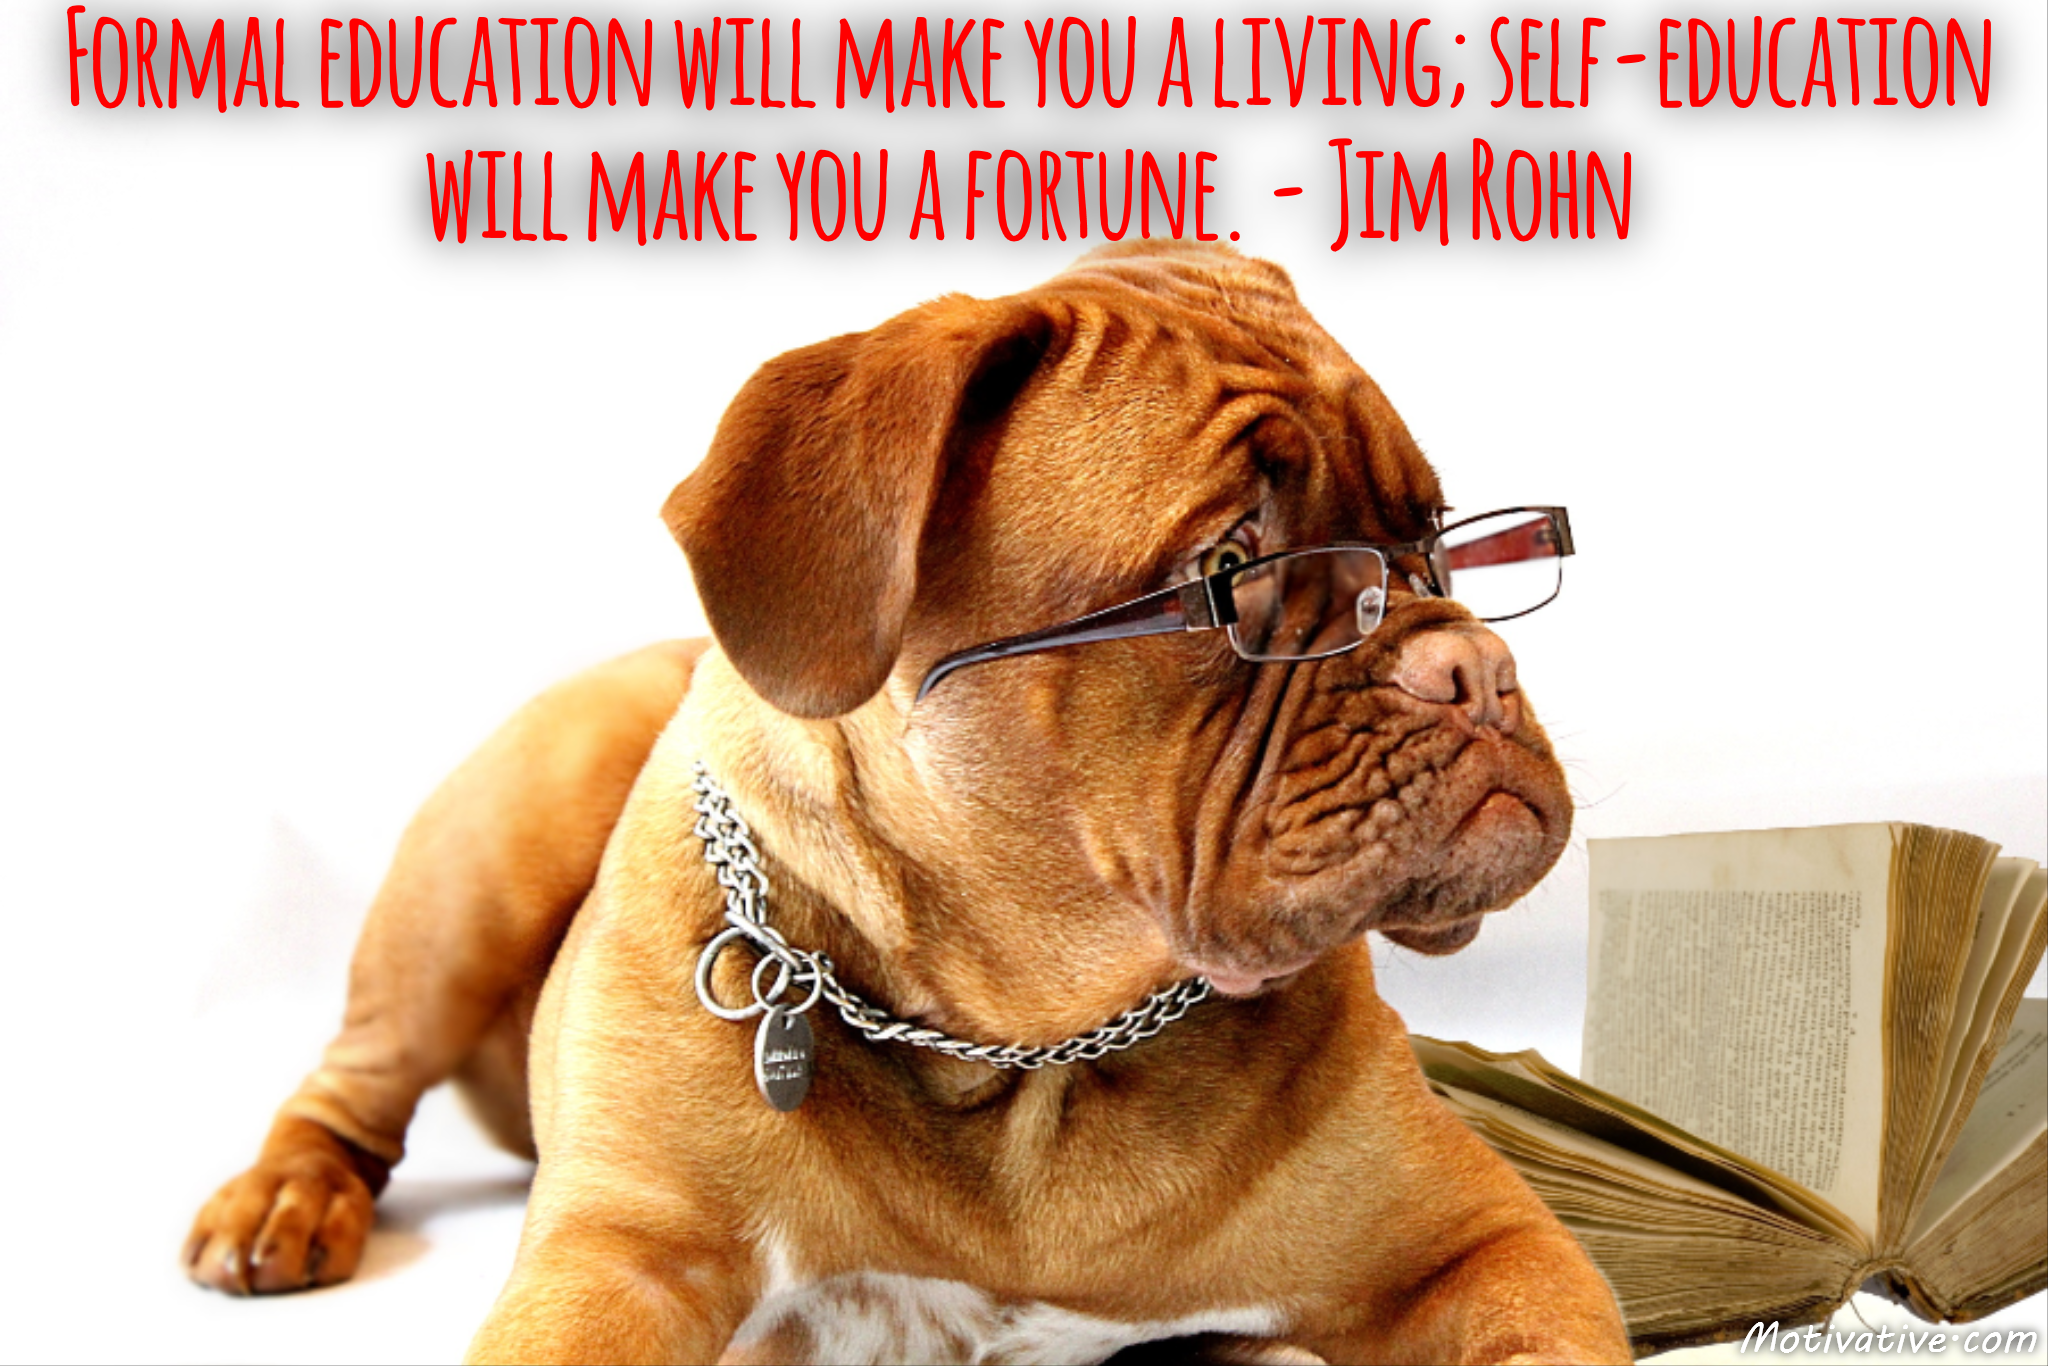 Formal education will make you a living; self-education will make you a fortune. – Jim Rohn